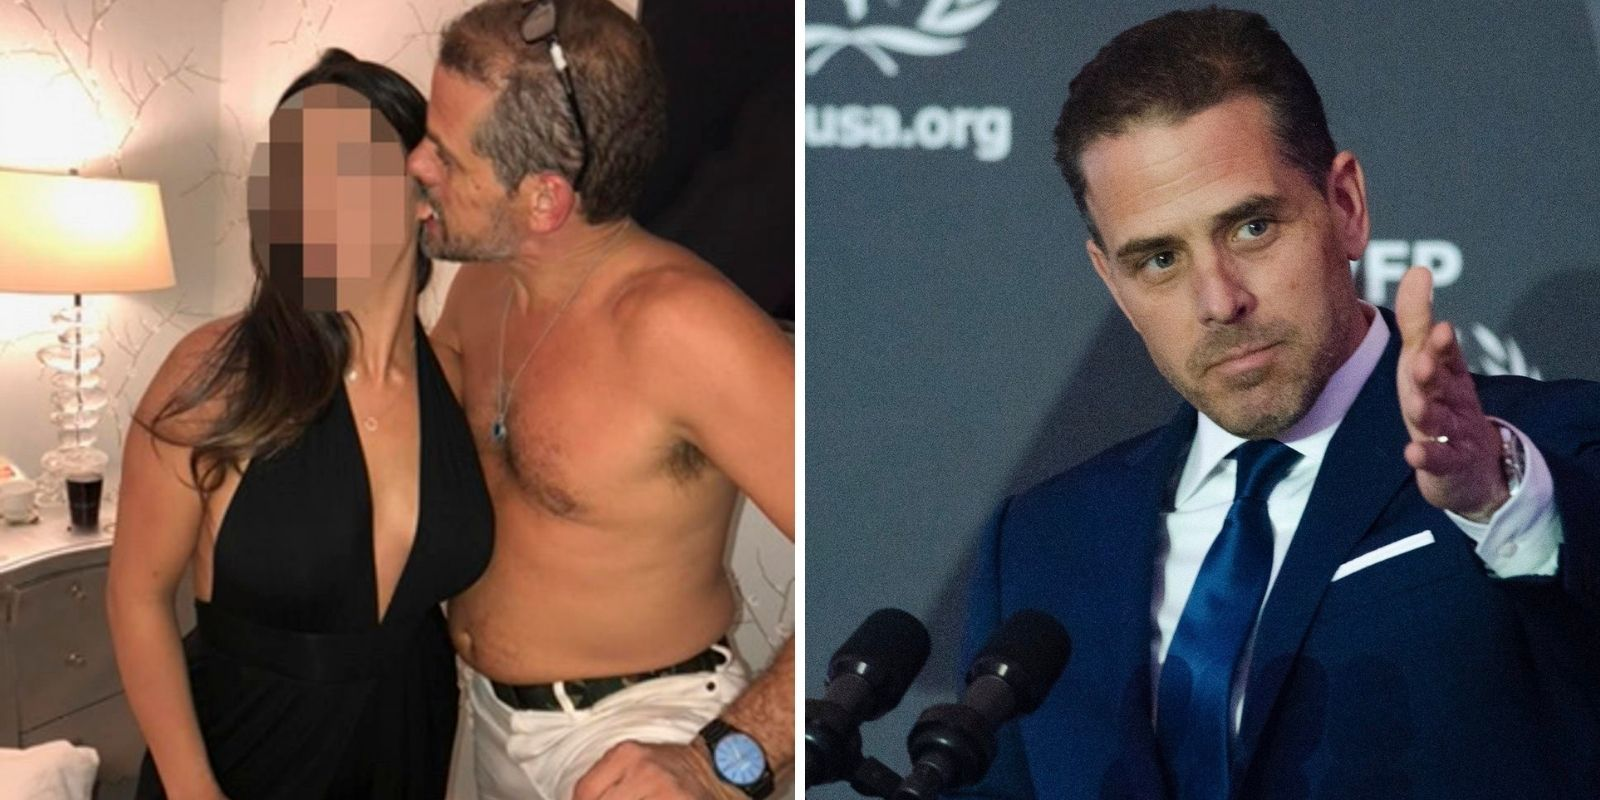 REVEALED: Hunter Biden wanted prostitutes to unionize, proposed rating system for pimps